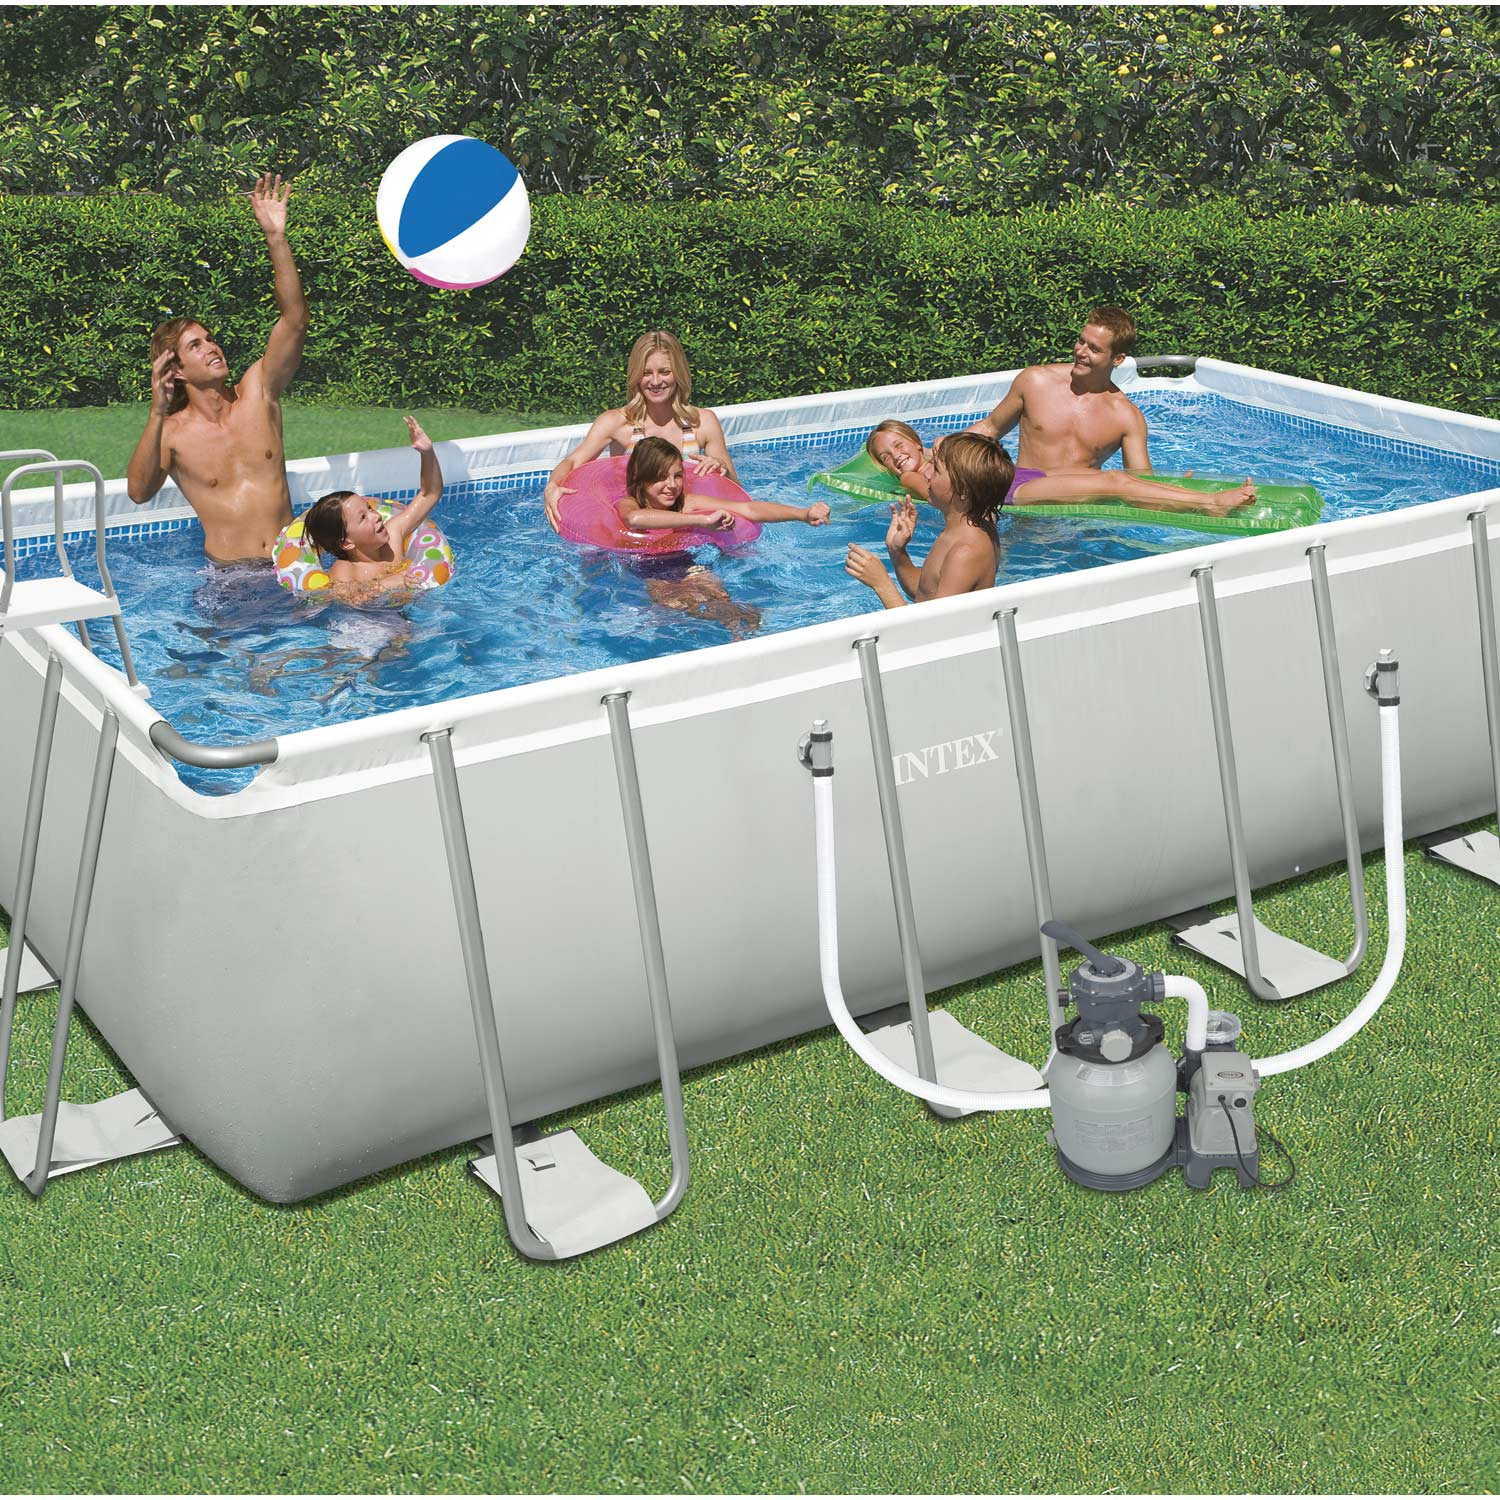 Piscine hors sol autoportante tubulaire ultra silver intex for Piscine carree hors sol